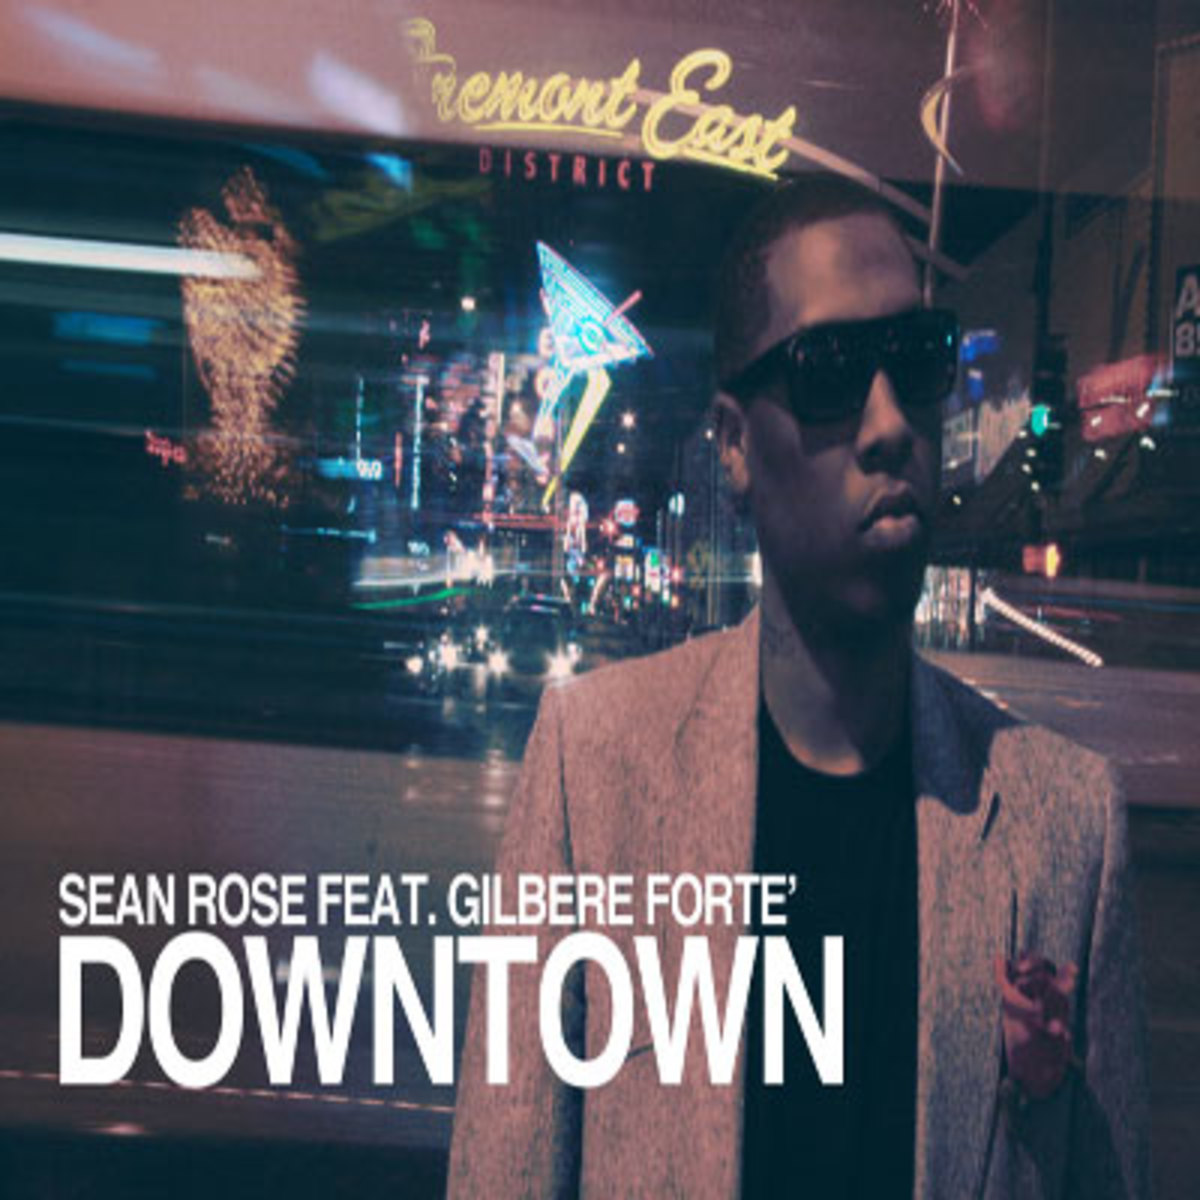 seanrose-downtown.jpg